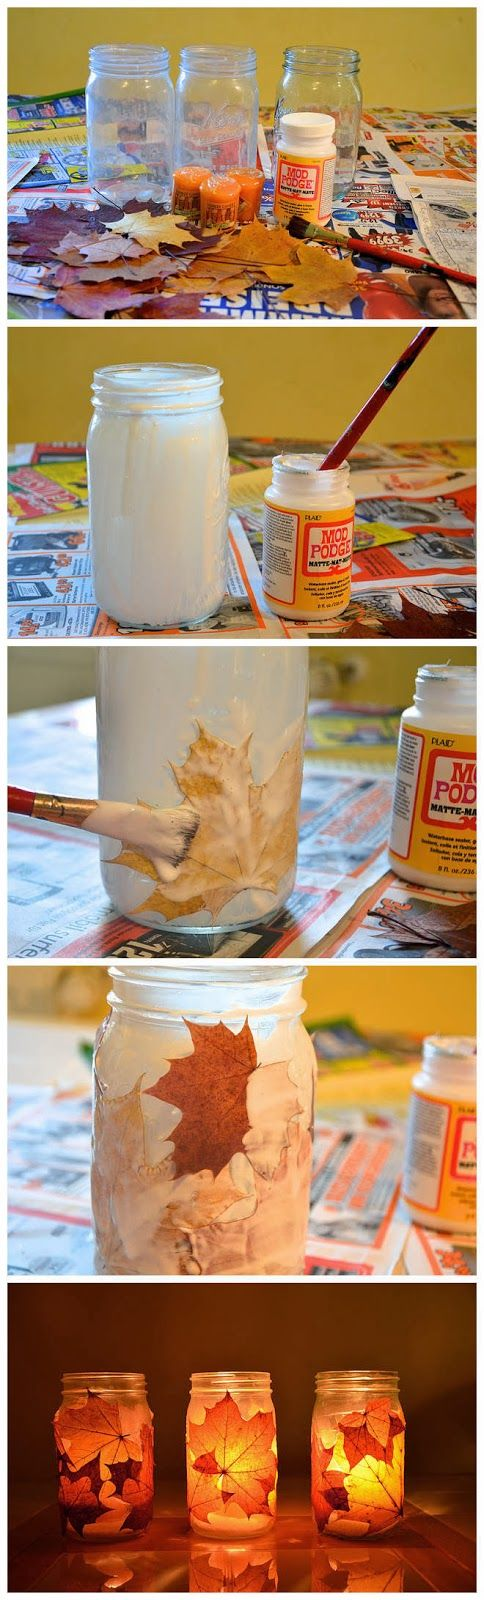 Autumn Lanterns DIY